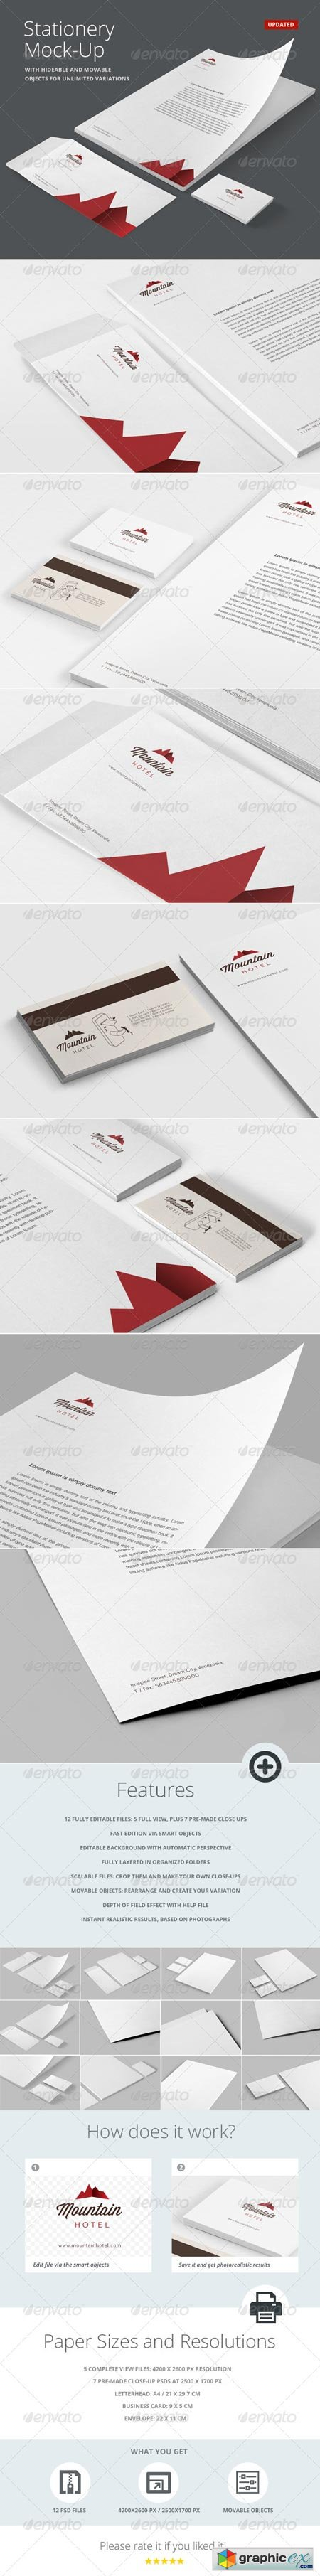 Stationery Branding Mock-Up 6078175